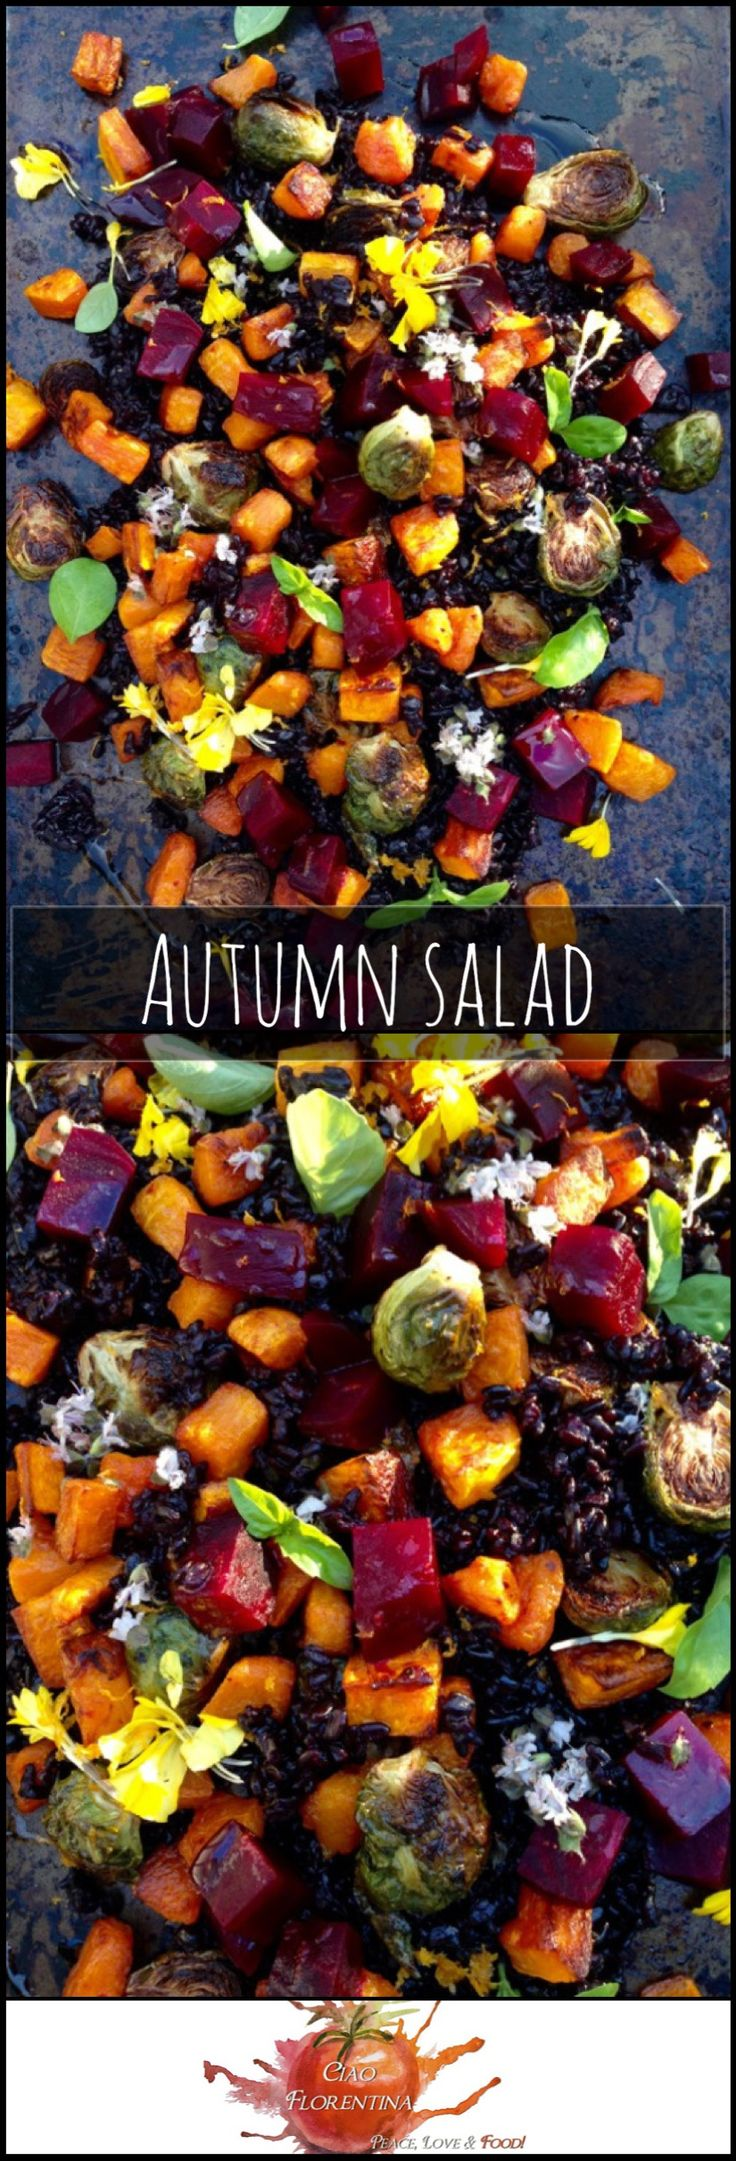 Autumn Salad Recipe of Roasted Red Beets, Butternut Squash & Roast Brussels Sprouts | www.CiaoFlorentina.com